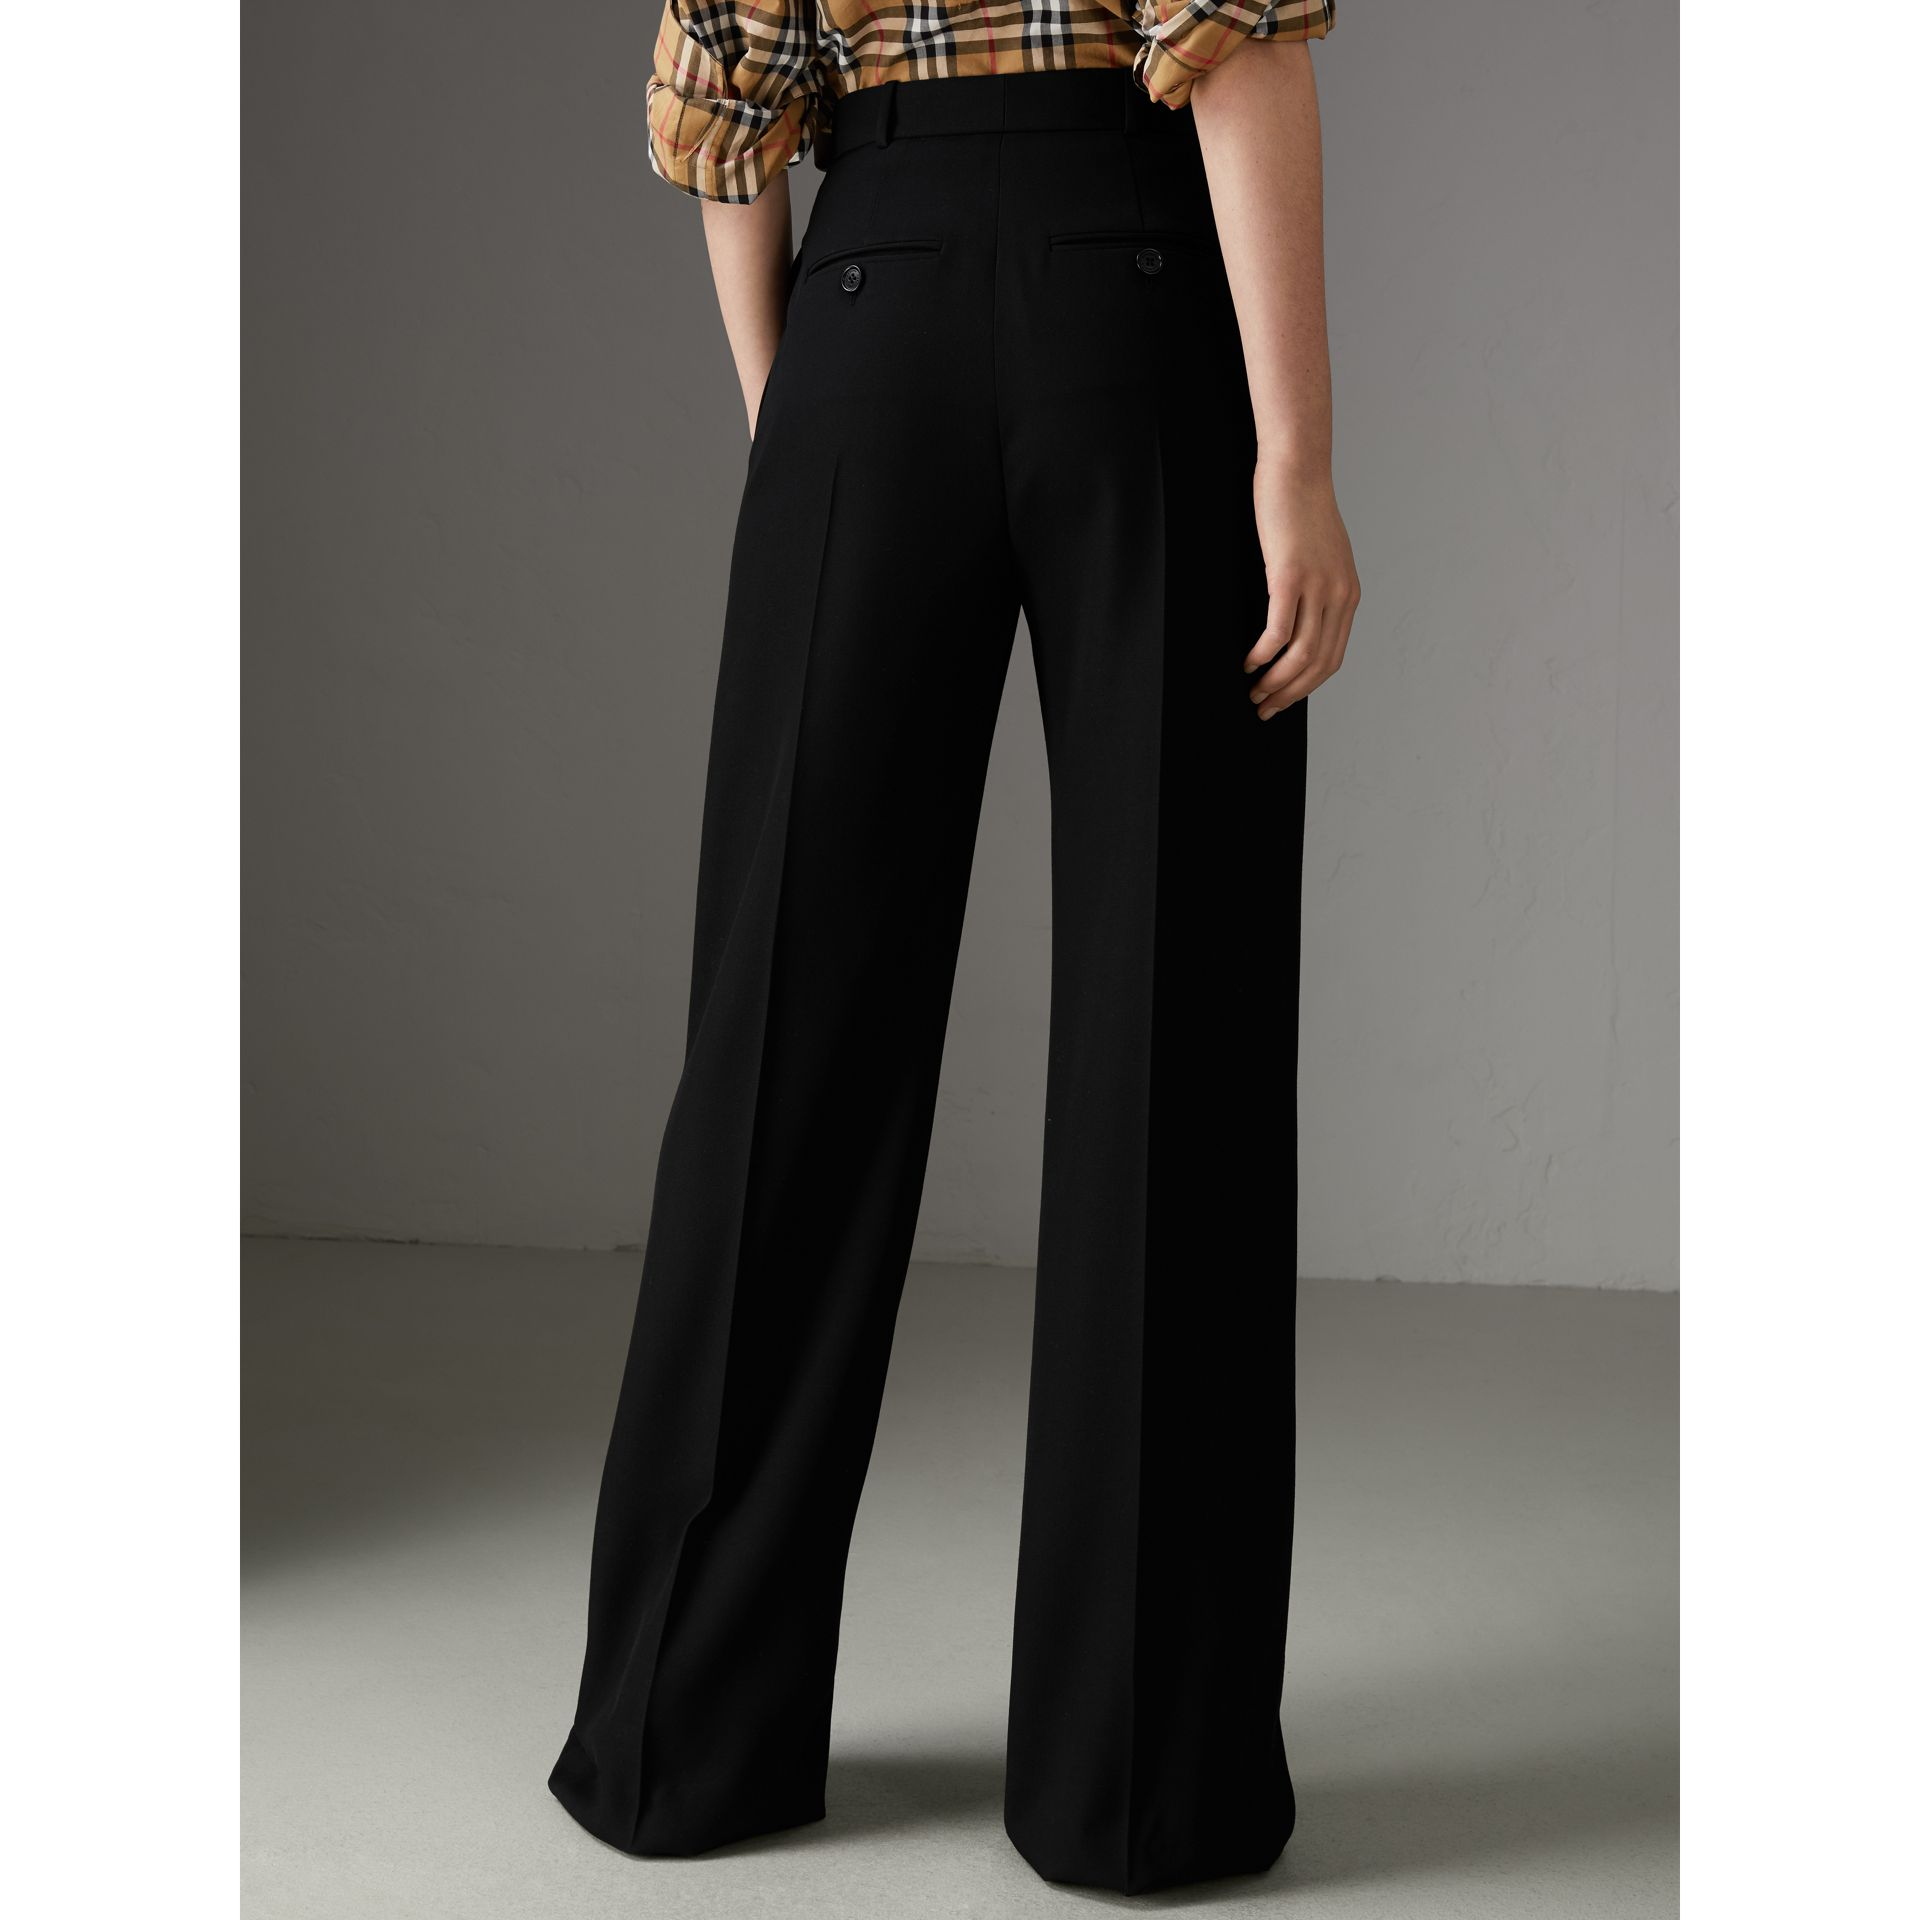 Wool High-waisted Trousers in Black - Women | Burberry United Kingdom - gallery image 2